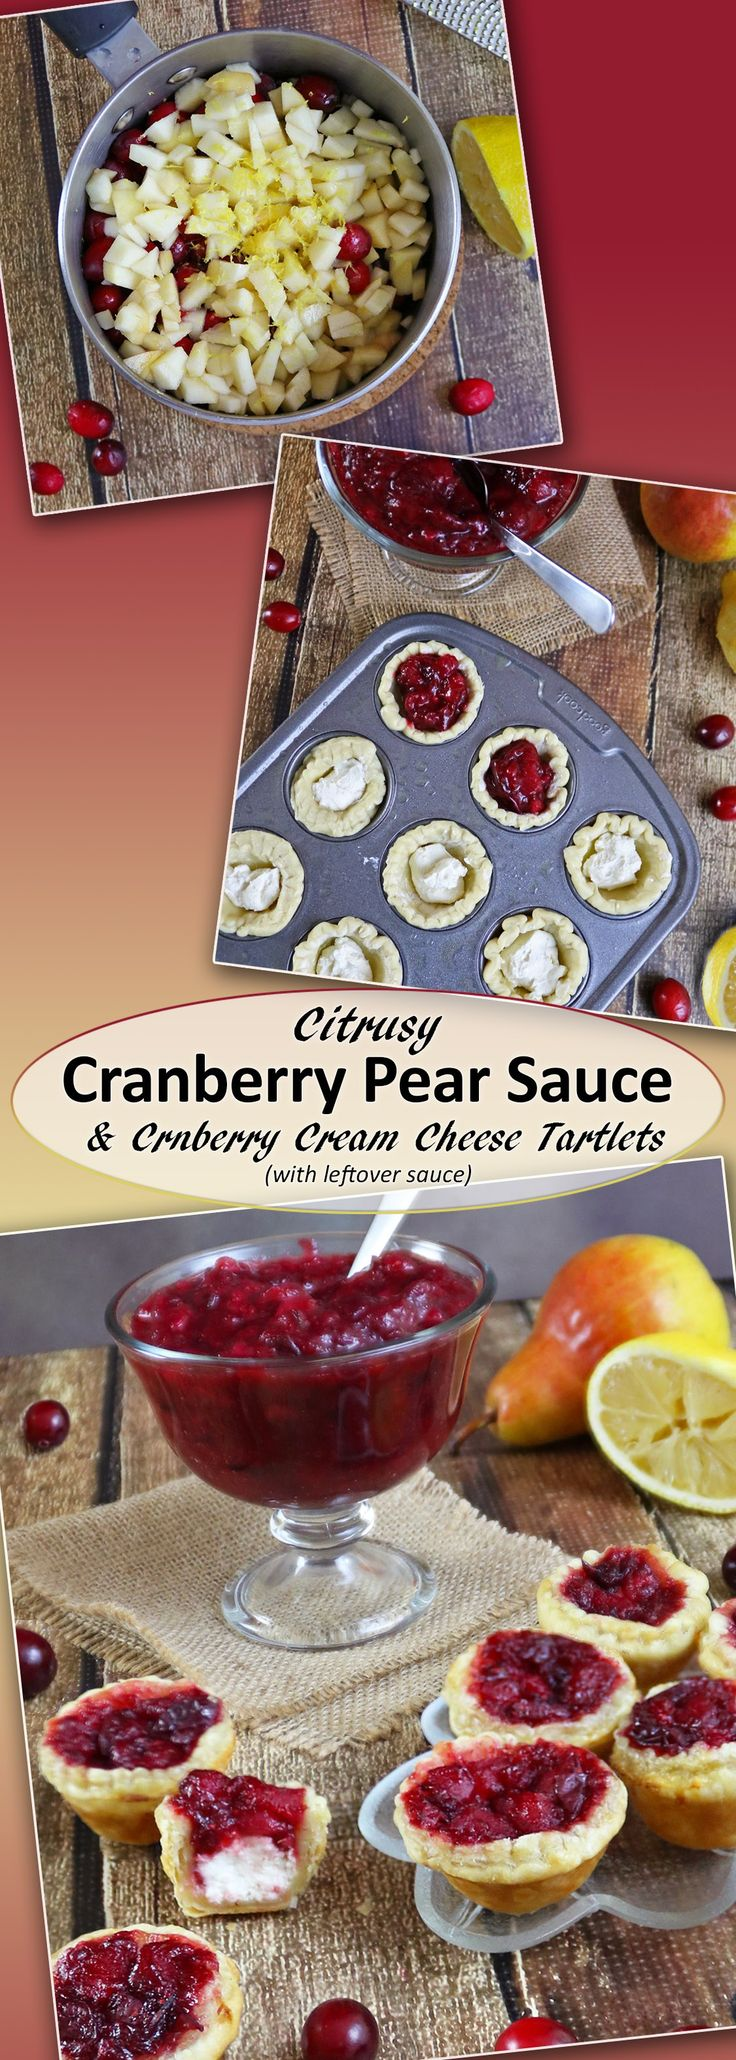 Citrusy Cranberry Pear Sauce and Cranberry Cream Cheese Tartlets